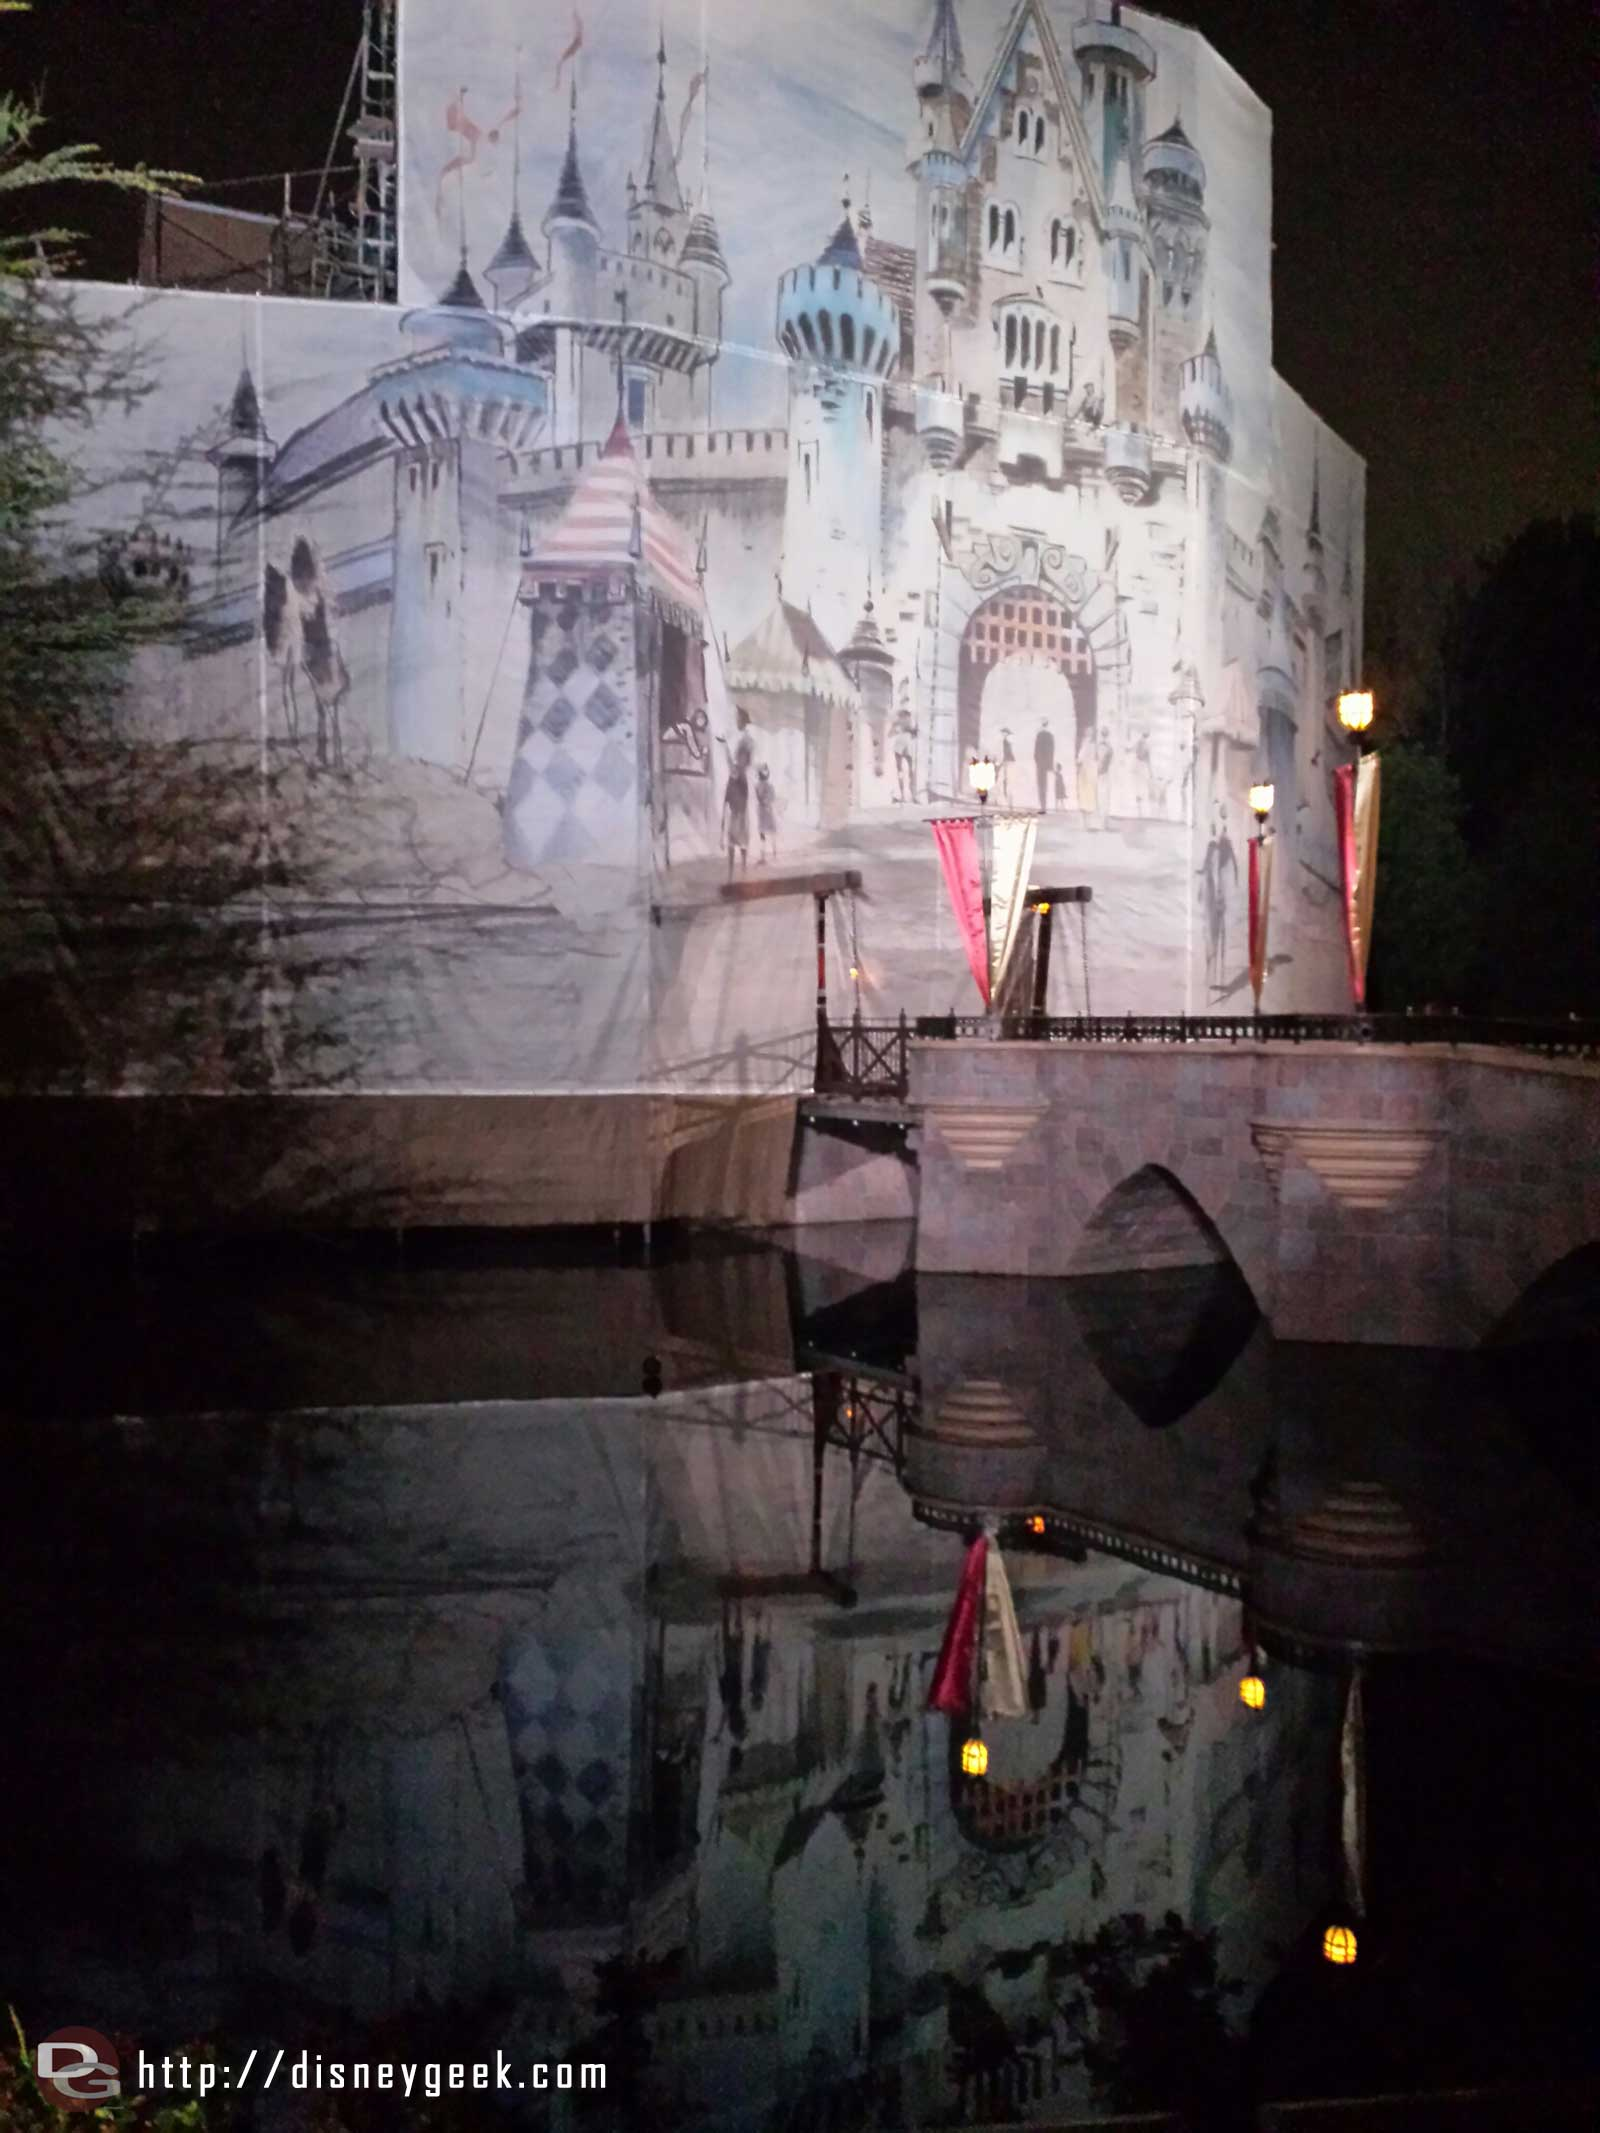 Sleeping Beauty Castle artwork and reflection #Disneyland